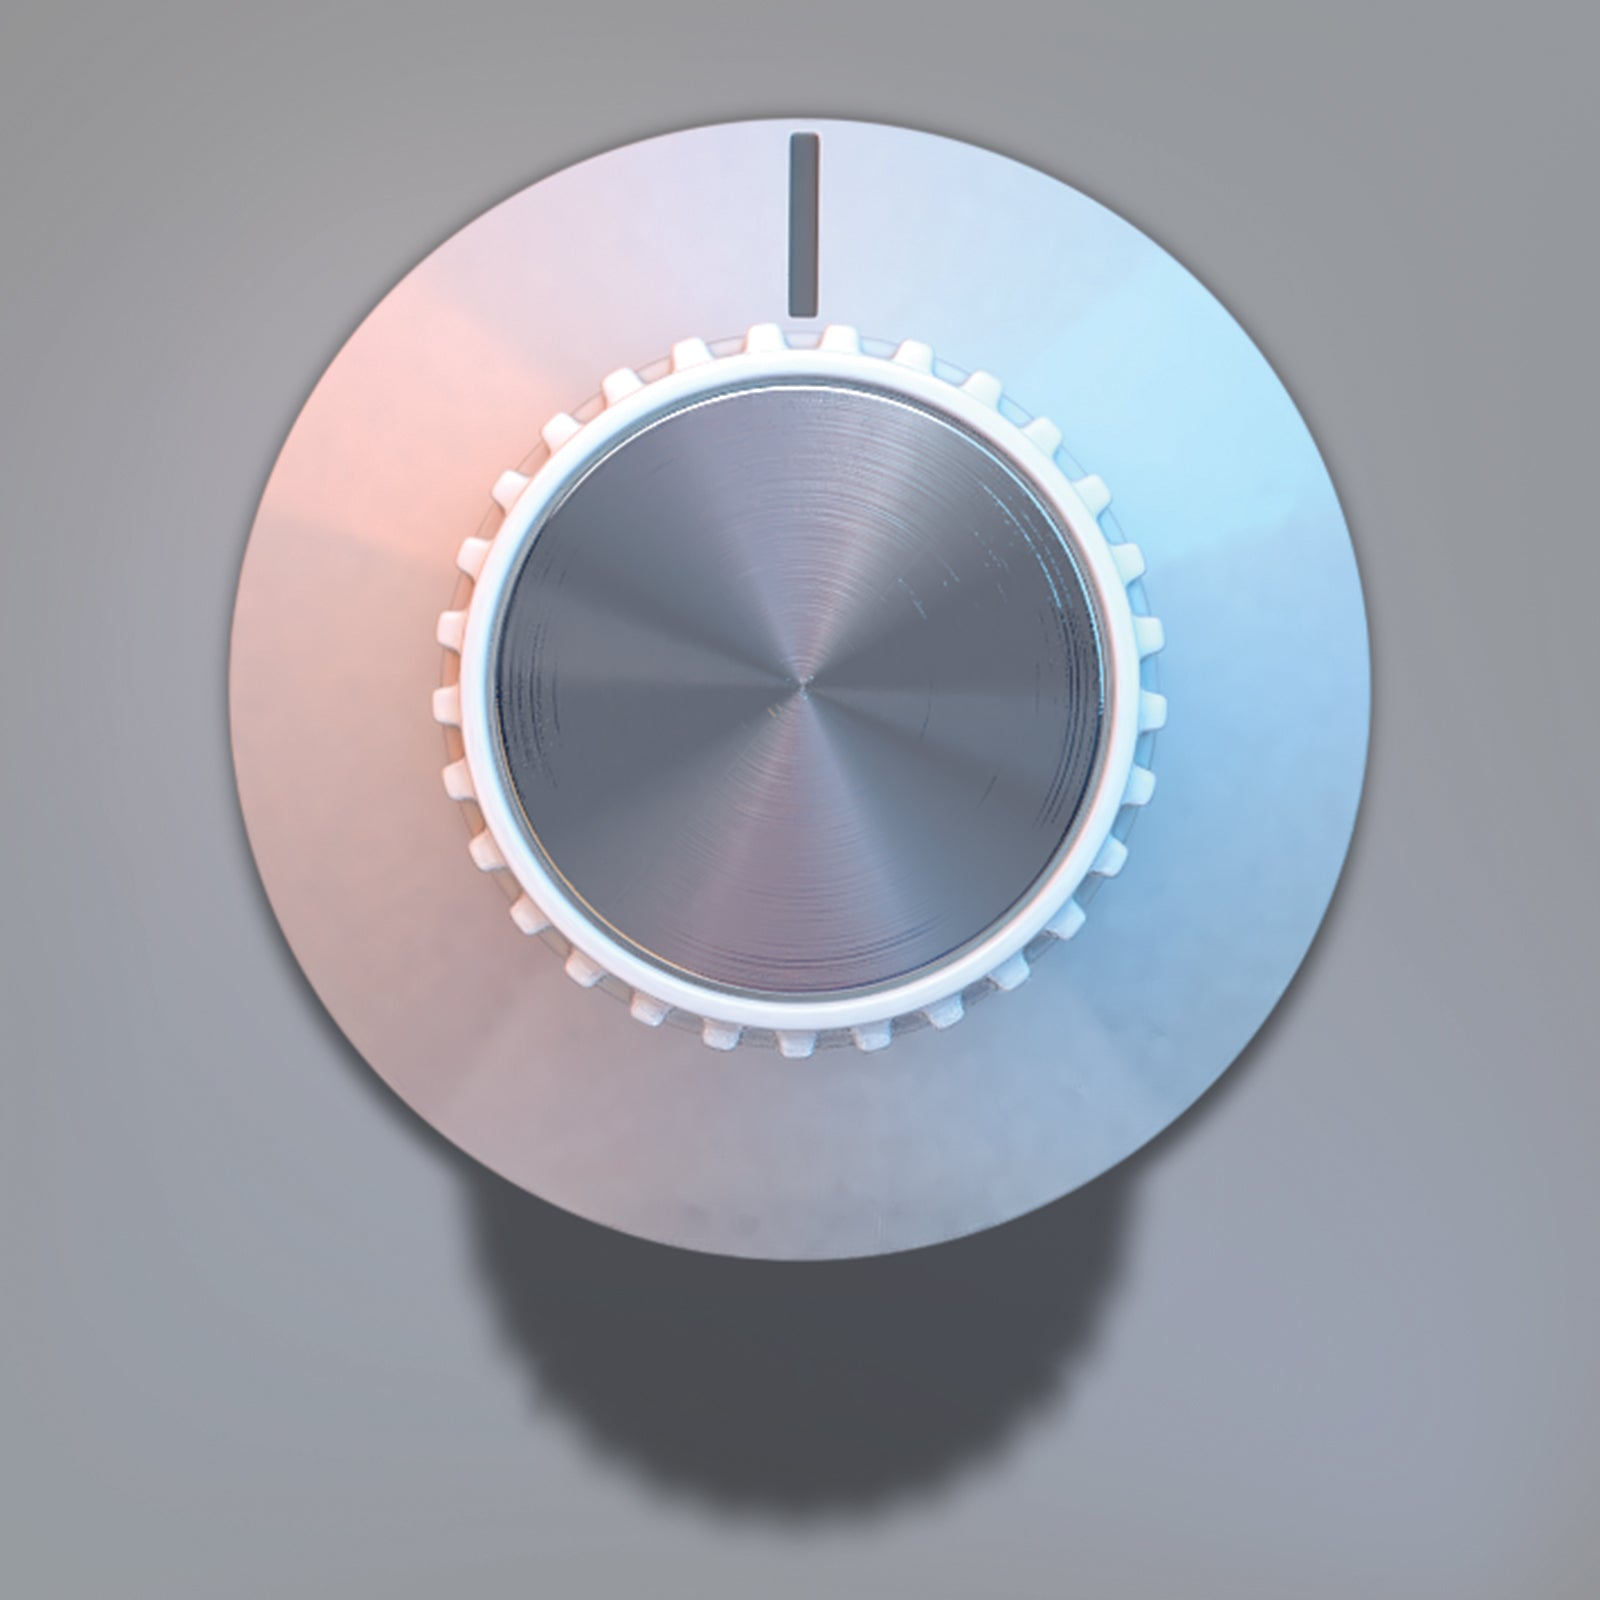 Shaft volume control knob 3D